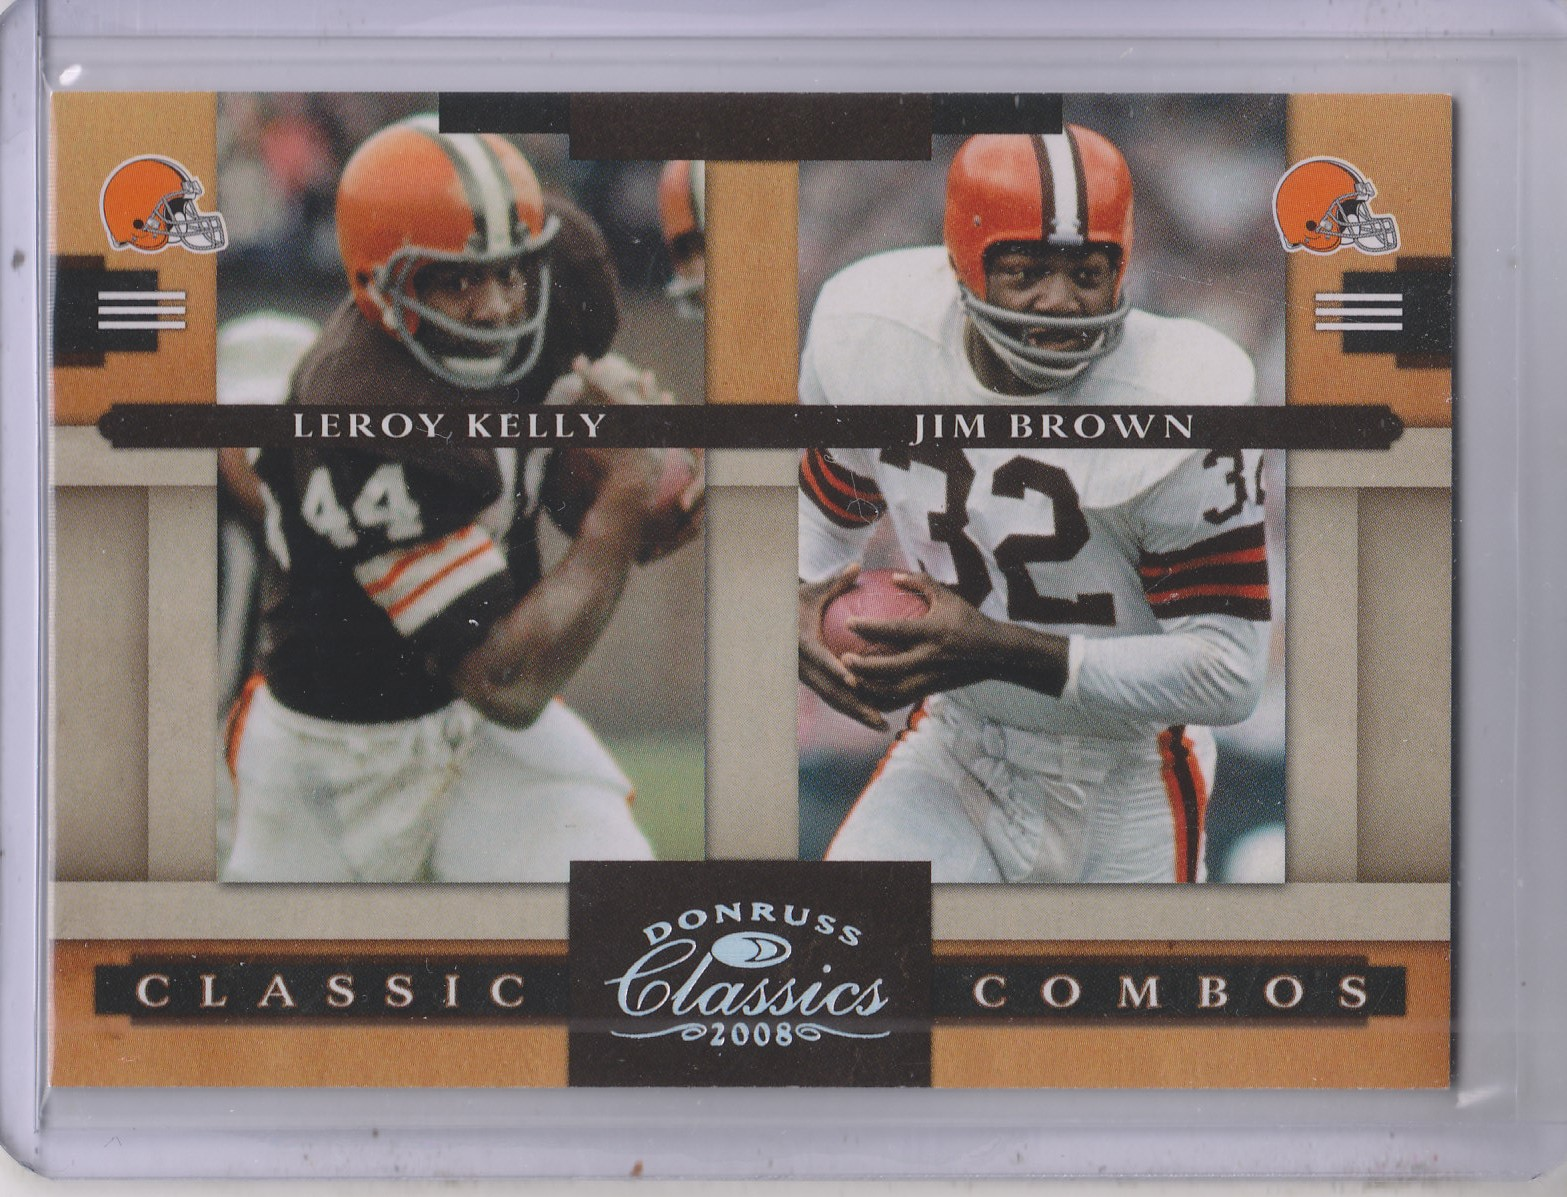 2008 Donruss Classics Classic Combos Silver Holofoil #6 Leroy Kelly/Jim Brown